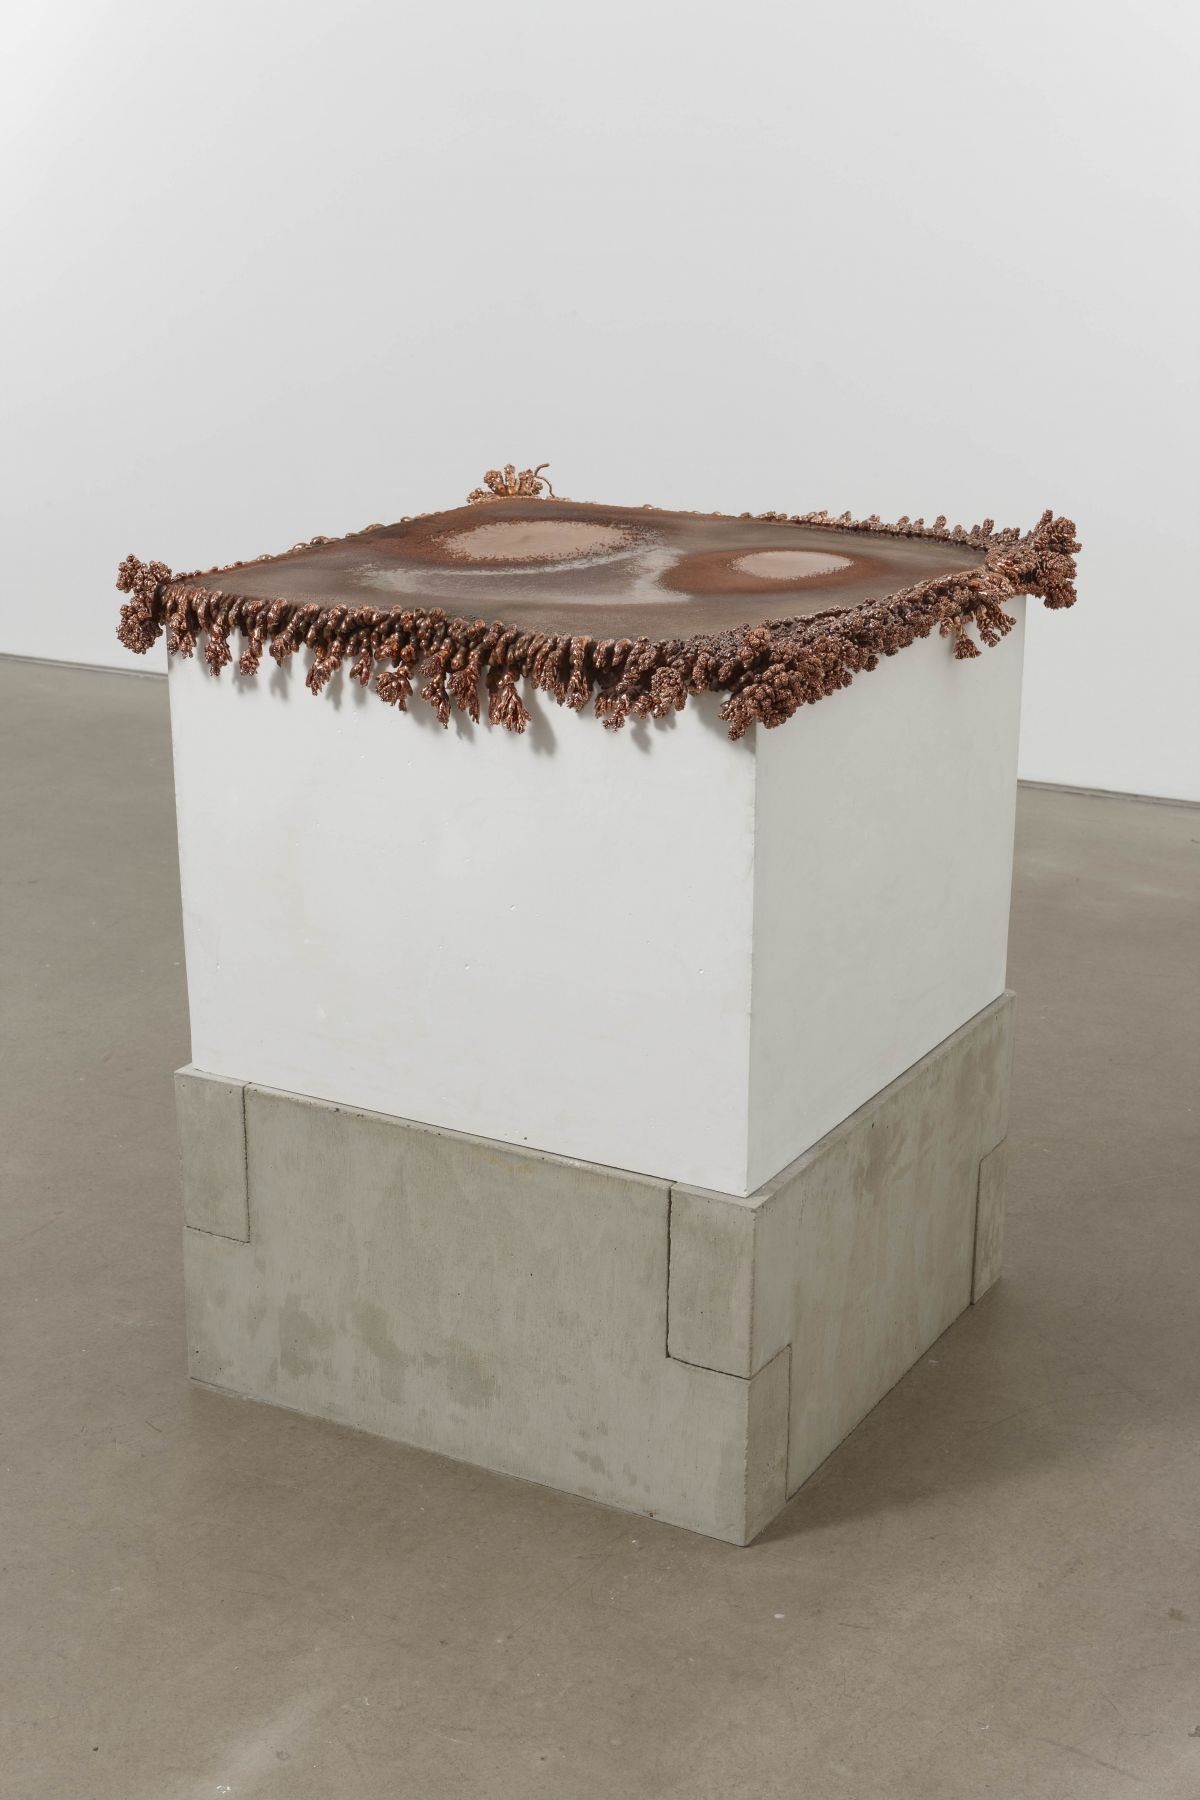 Plated Plane 32009-10Copper on plaster18 x 24 x 24 inches (45.7 x 61 x 61 cm)HB 21